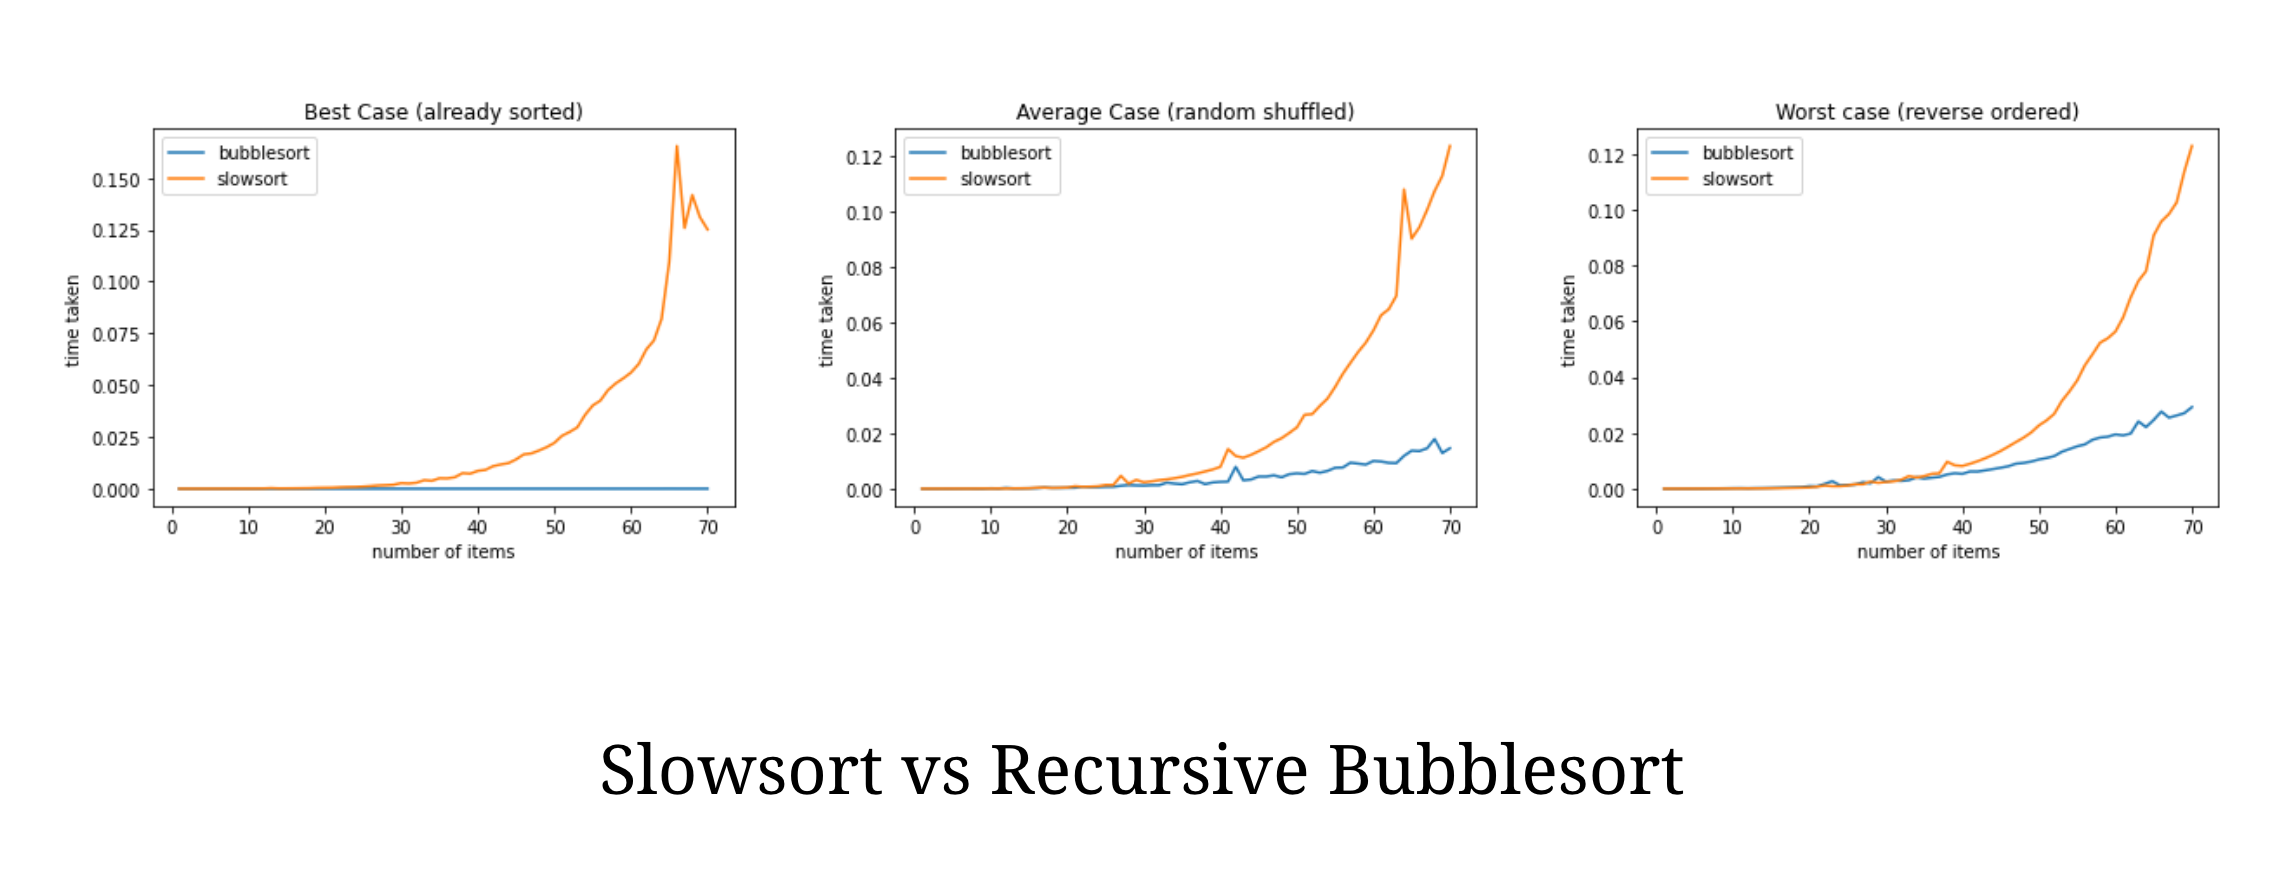 slowsort vs recursive bubblesort